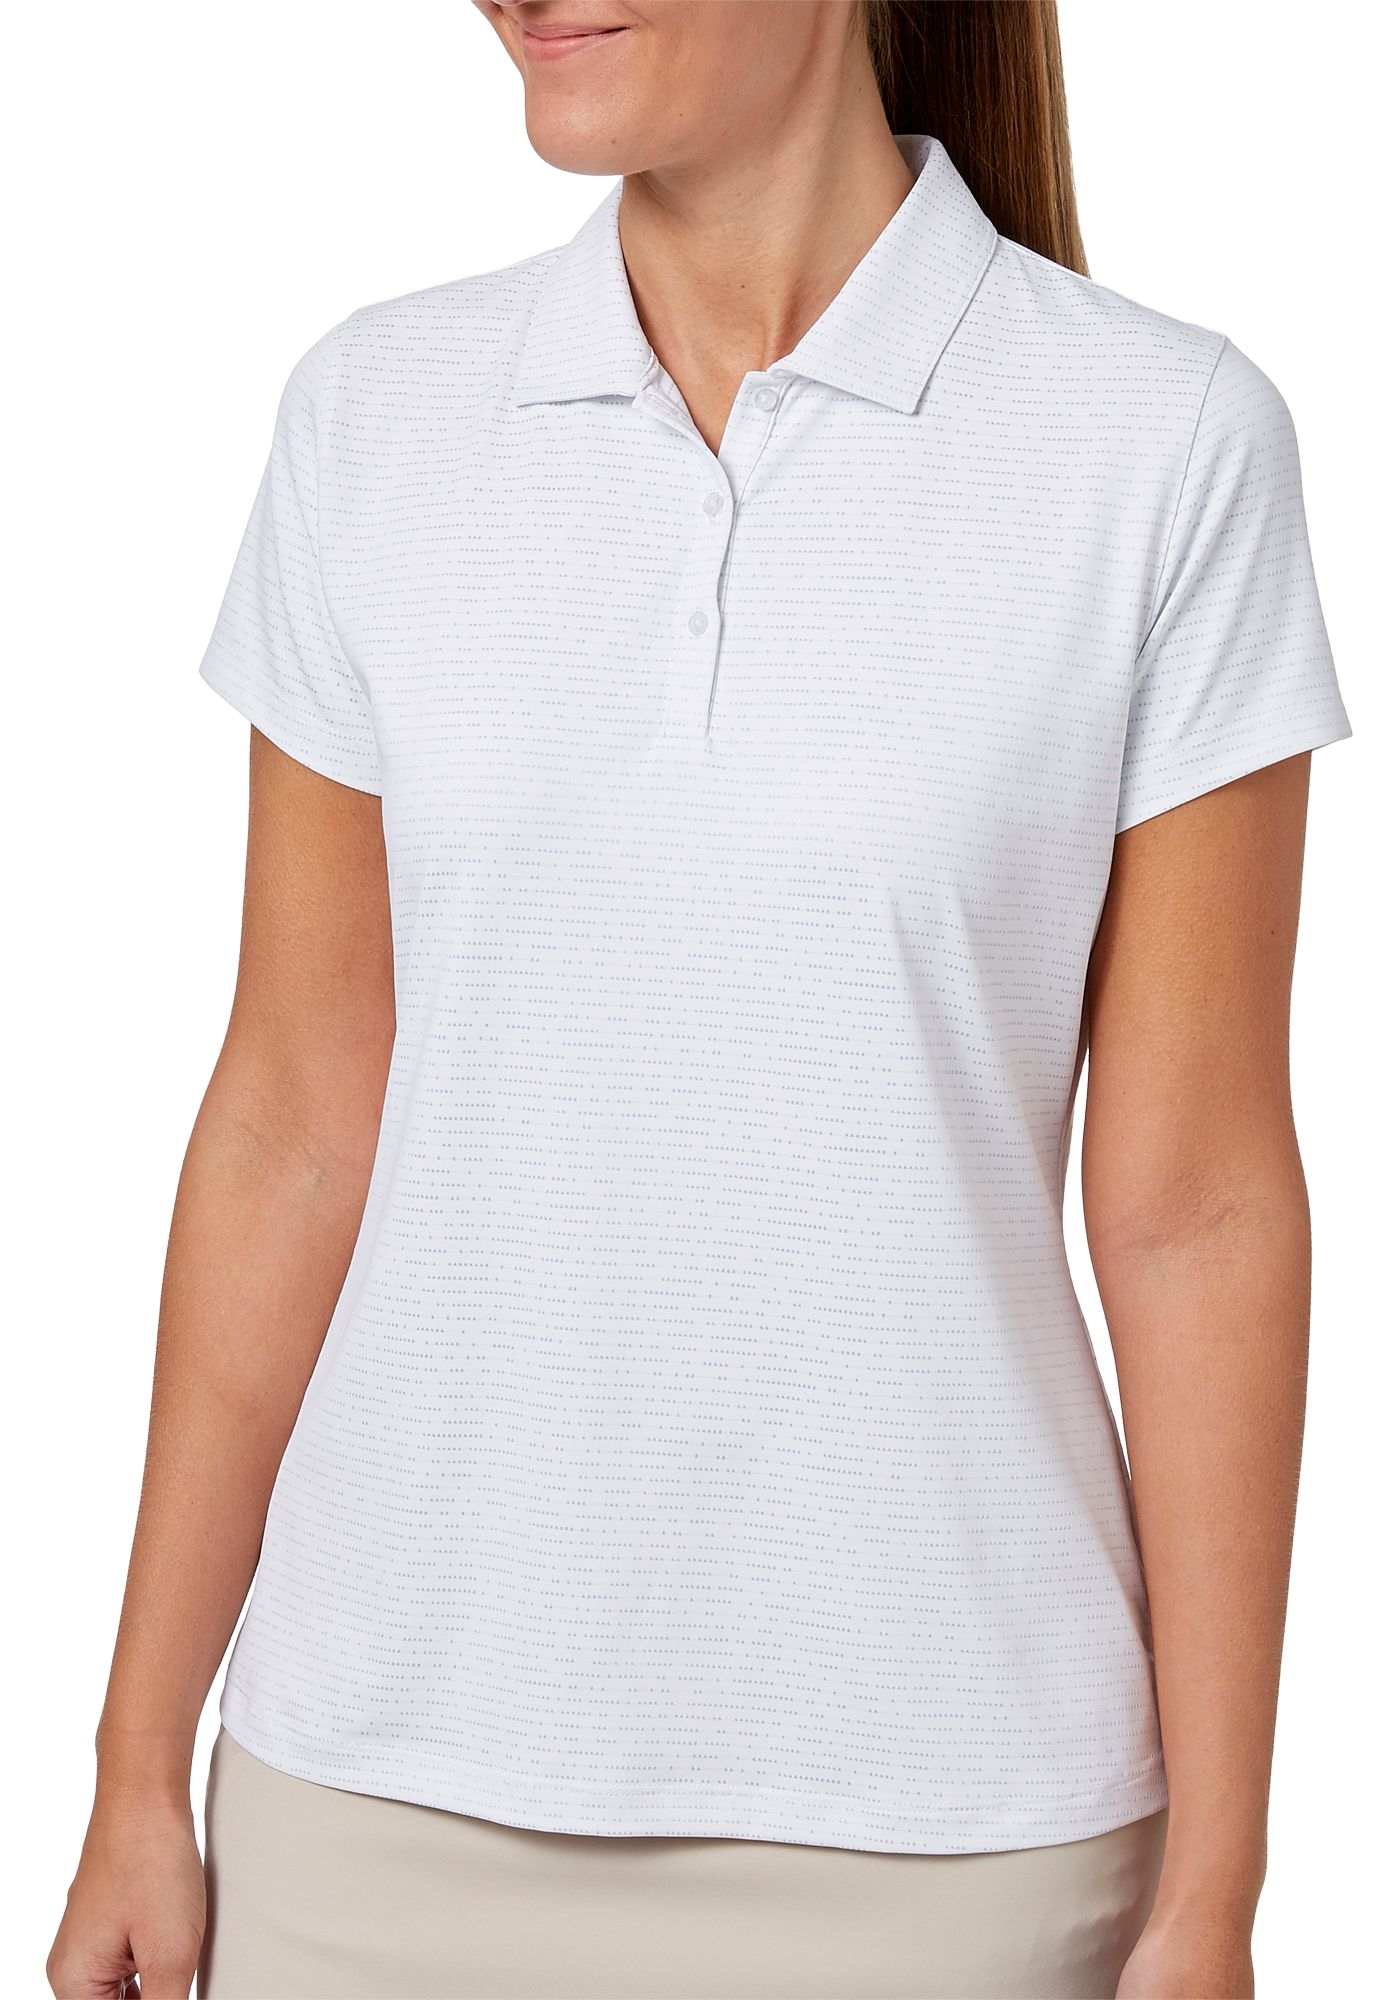 Lady Hagen Women's Empower Collection Dot Print Golf Polo